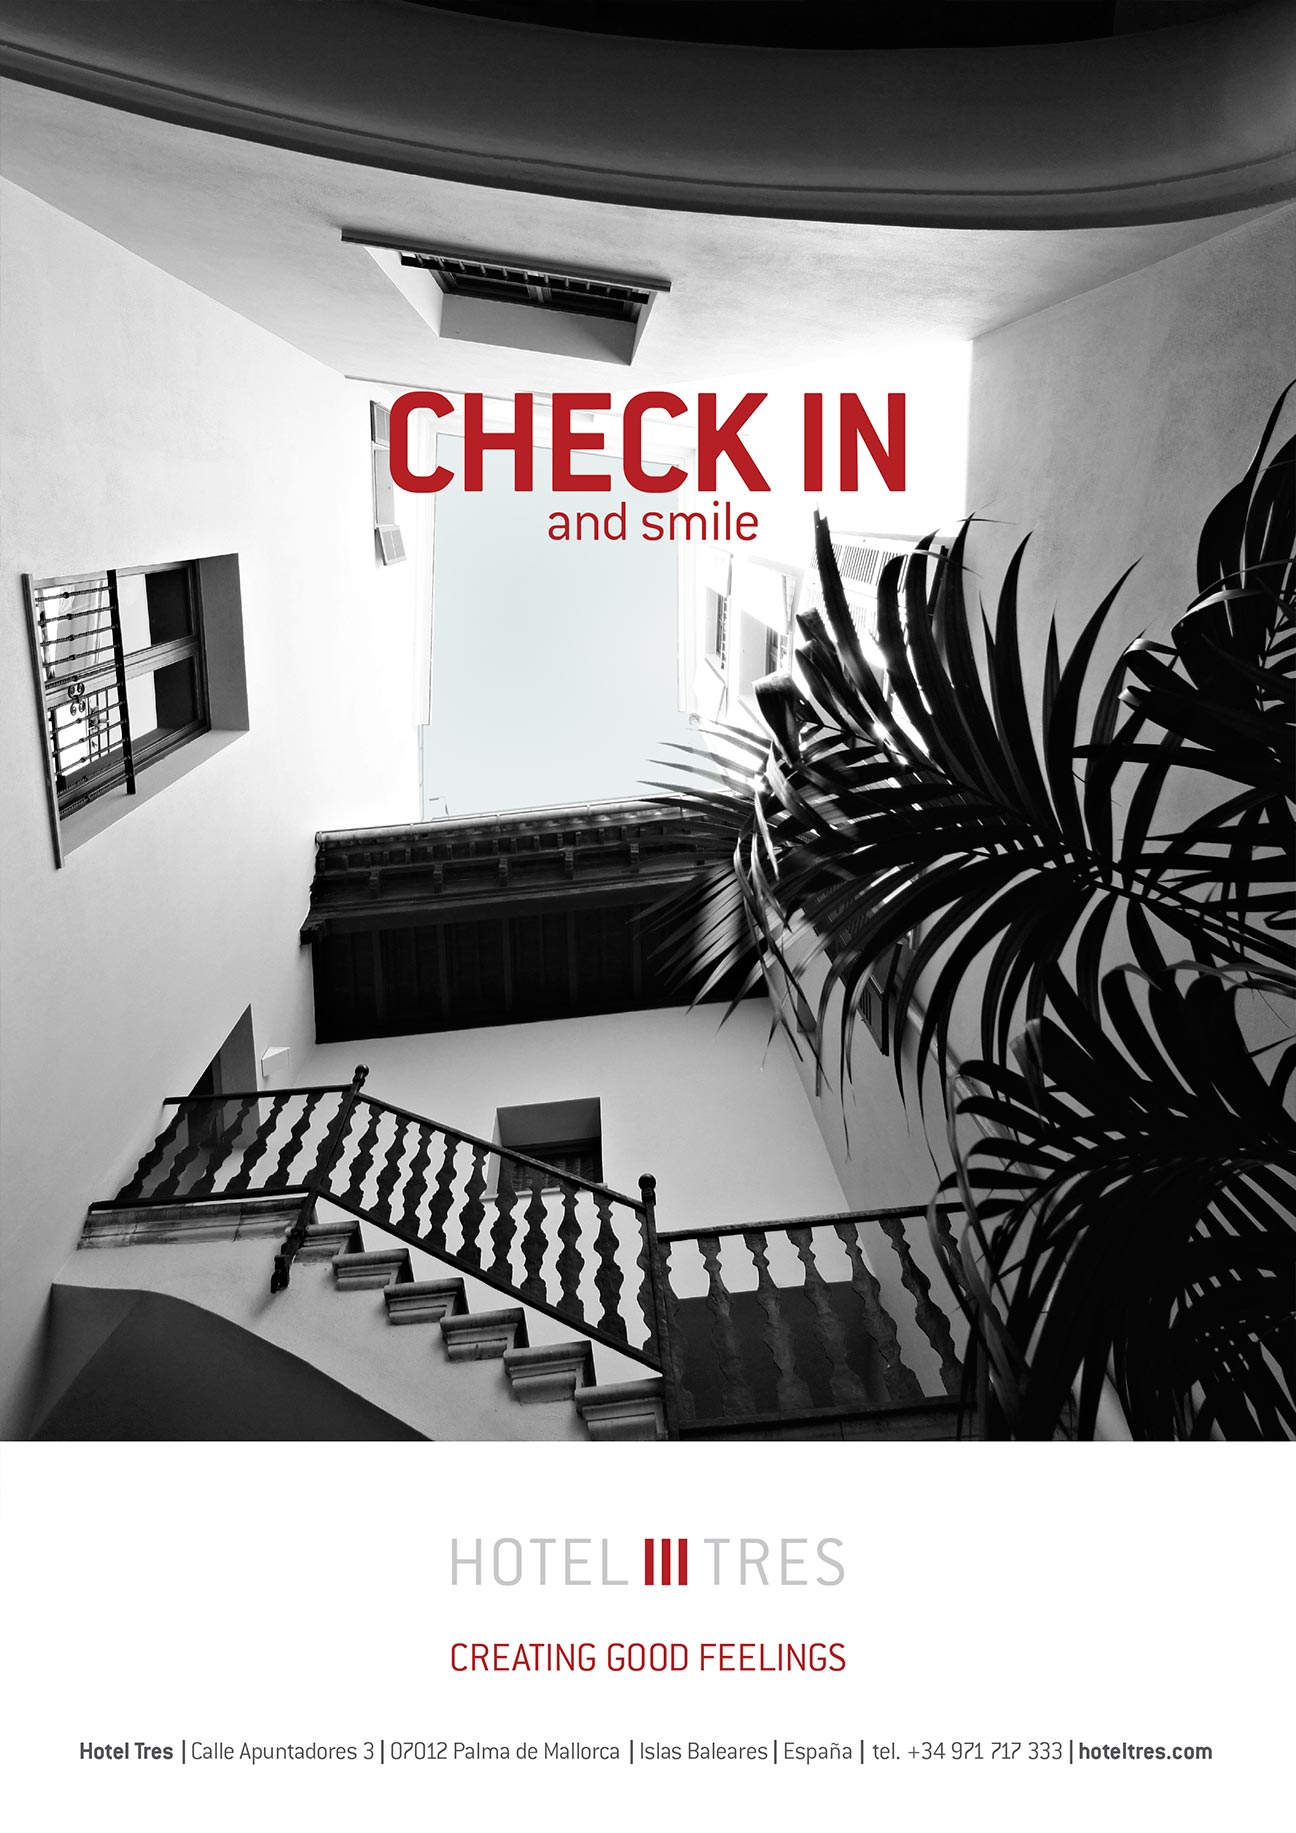 Hotel Tres - Check in